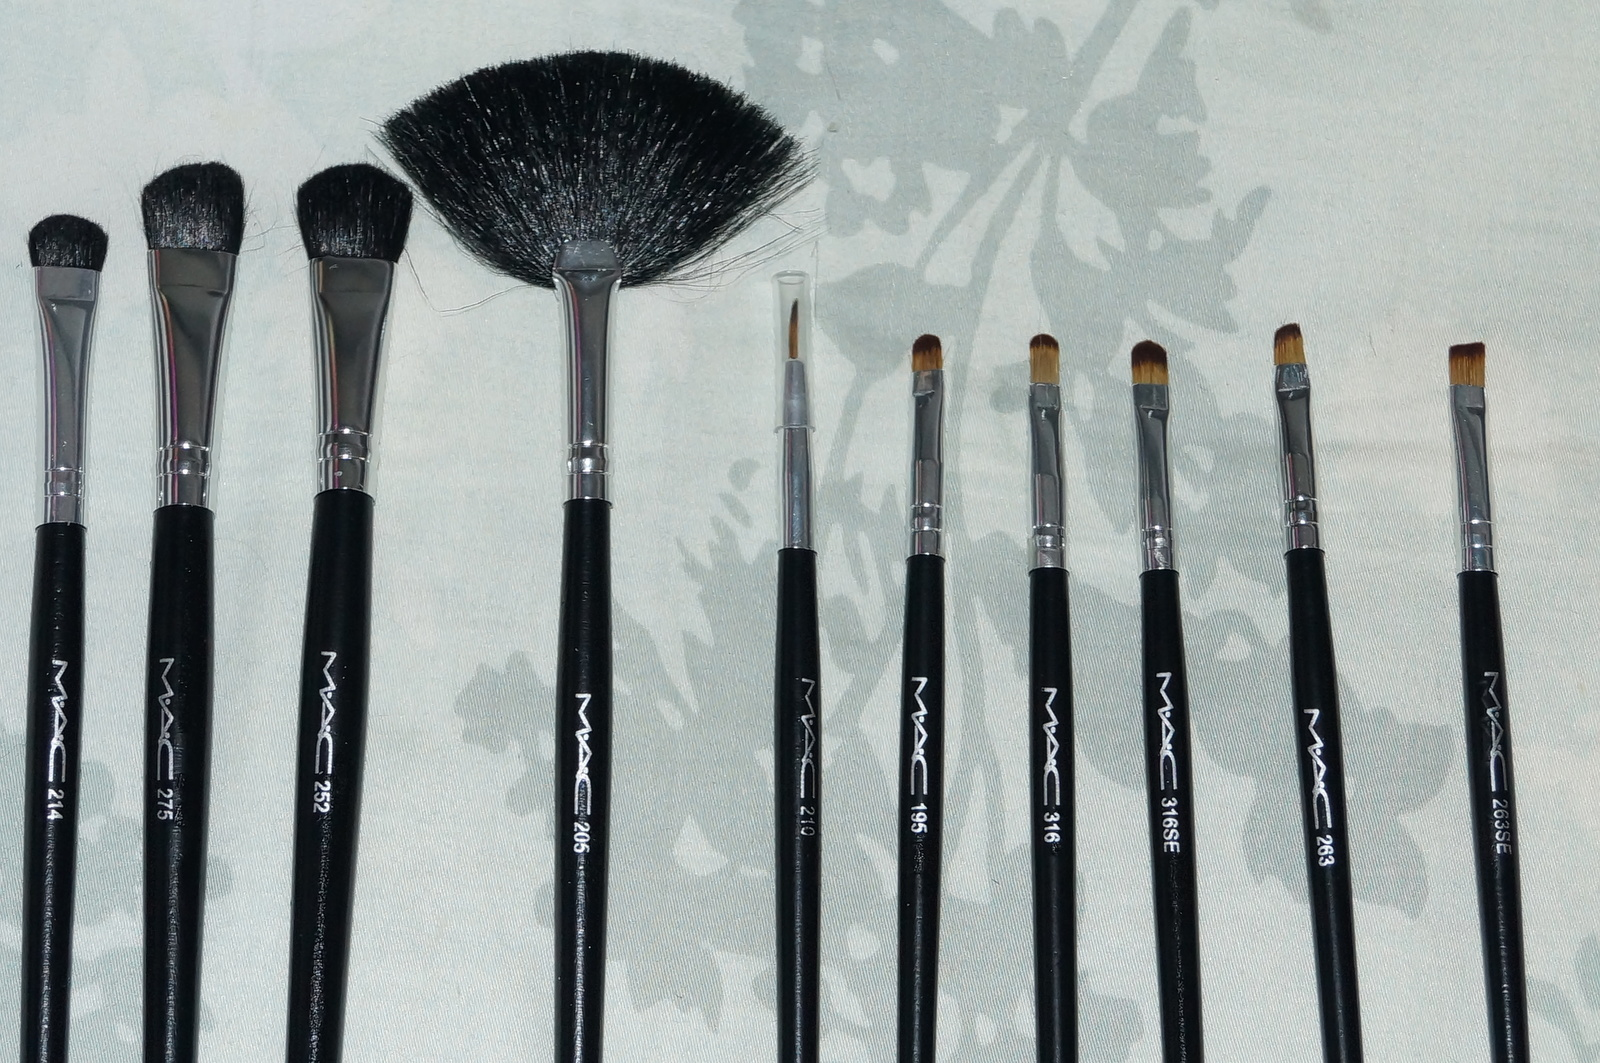 mac brushes. my girlfriend daughter just give her this mac brushes set that she never use. i wonder anyone can confirm is real bushes and the leather case. mac